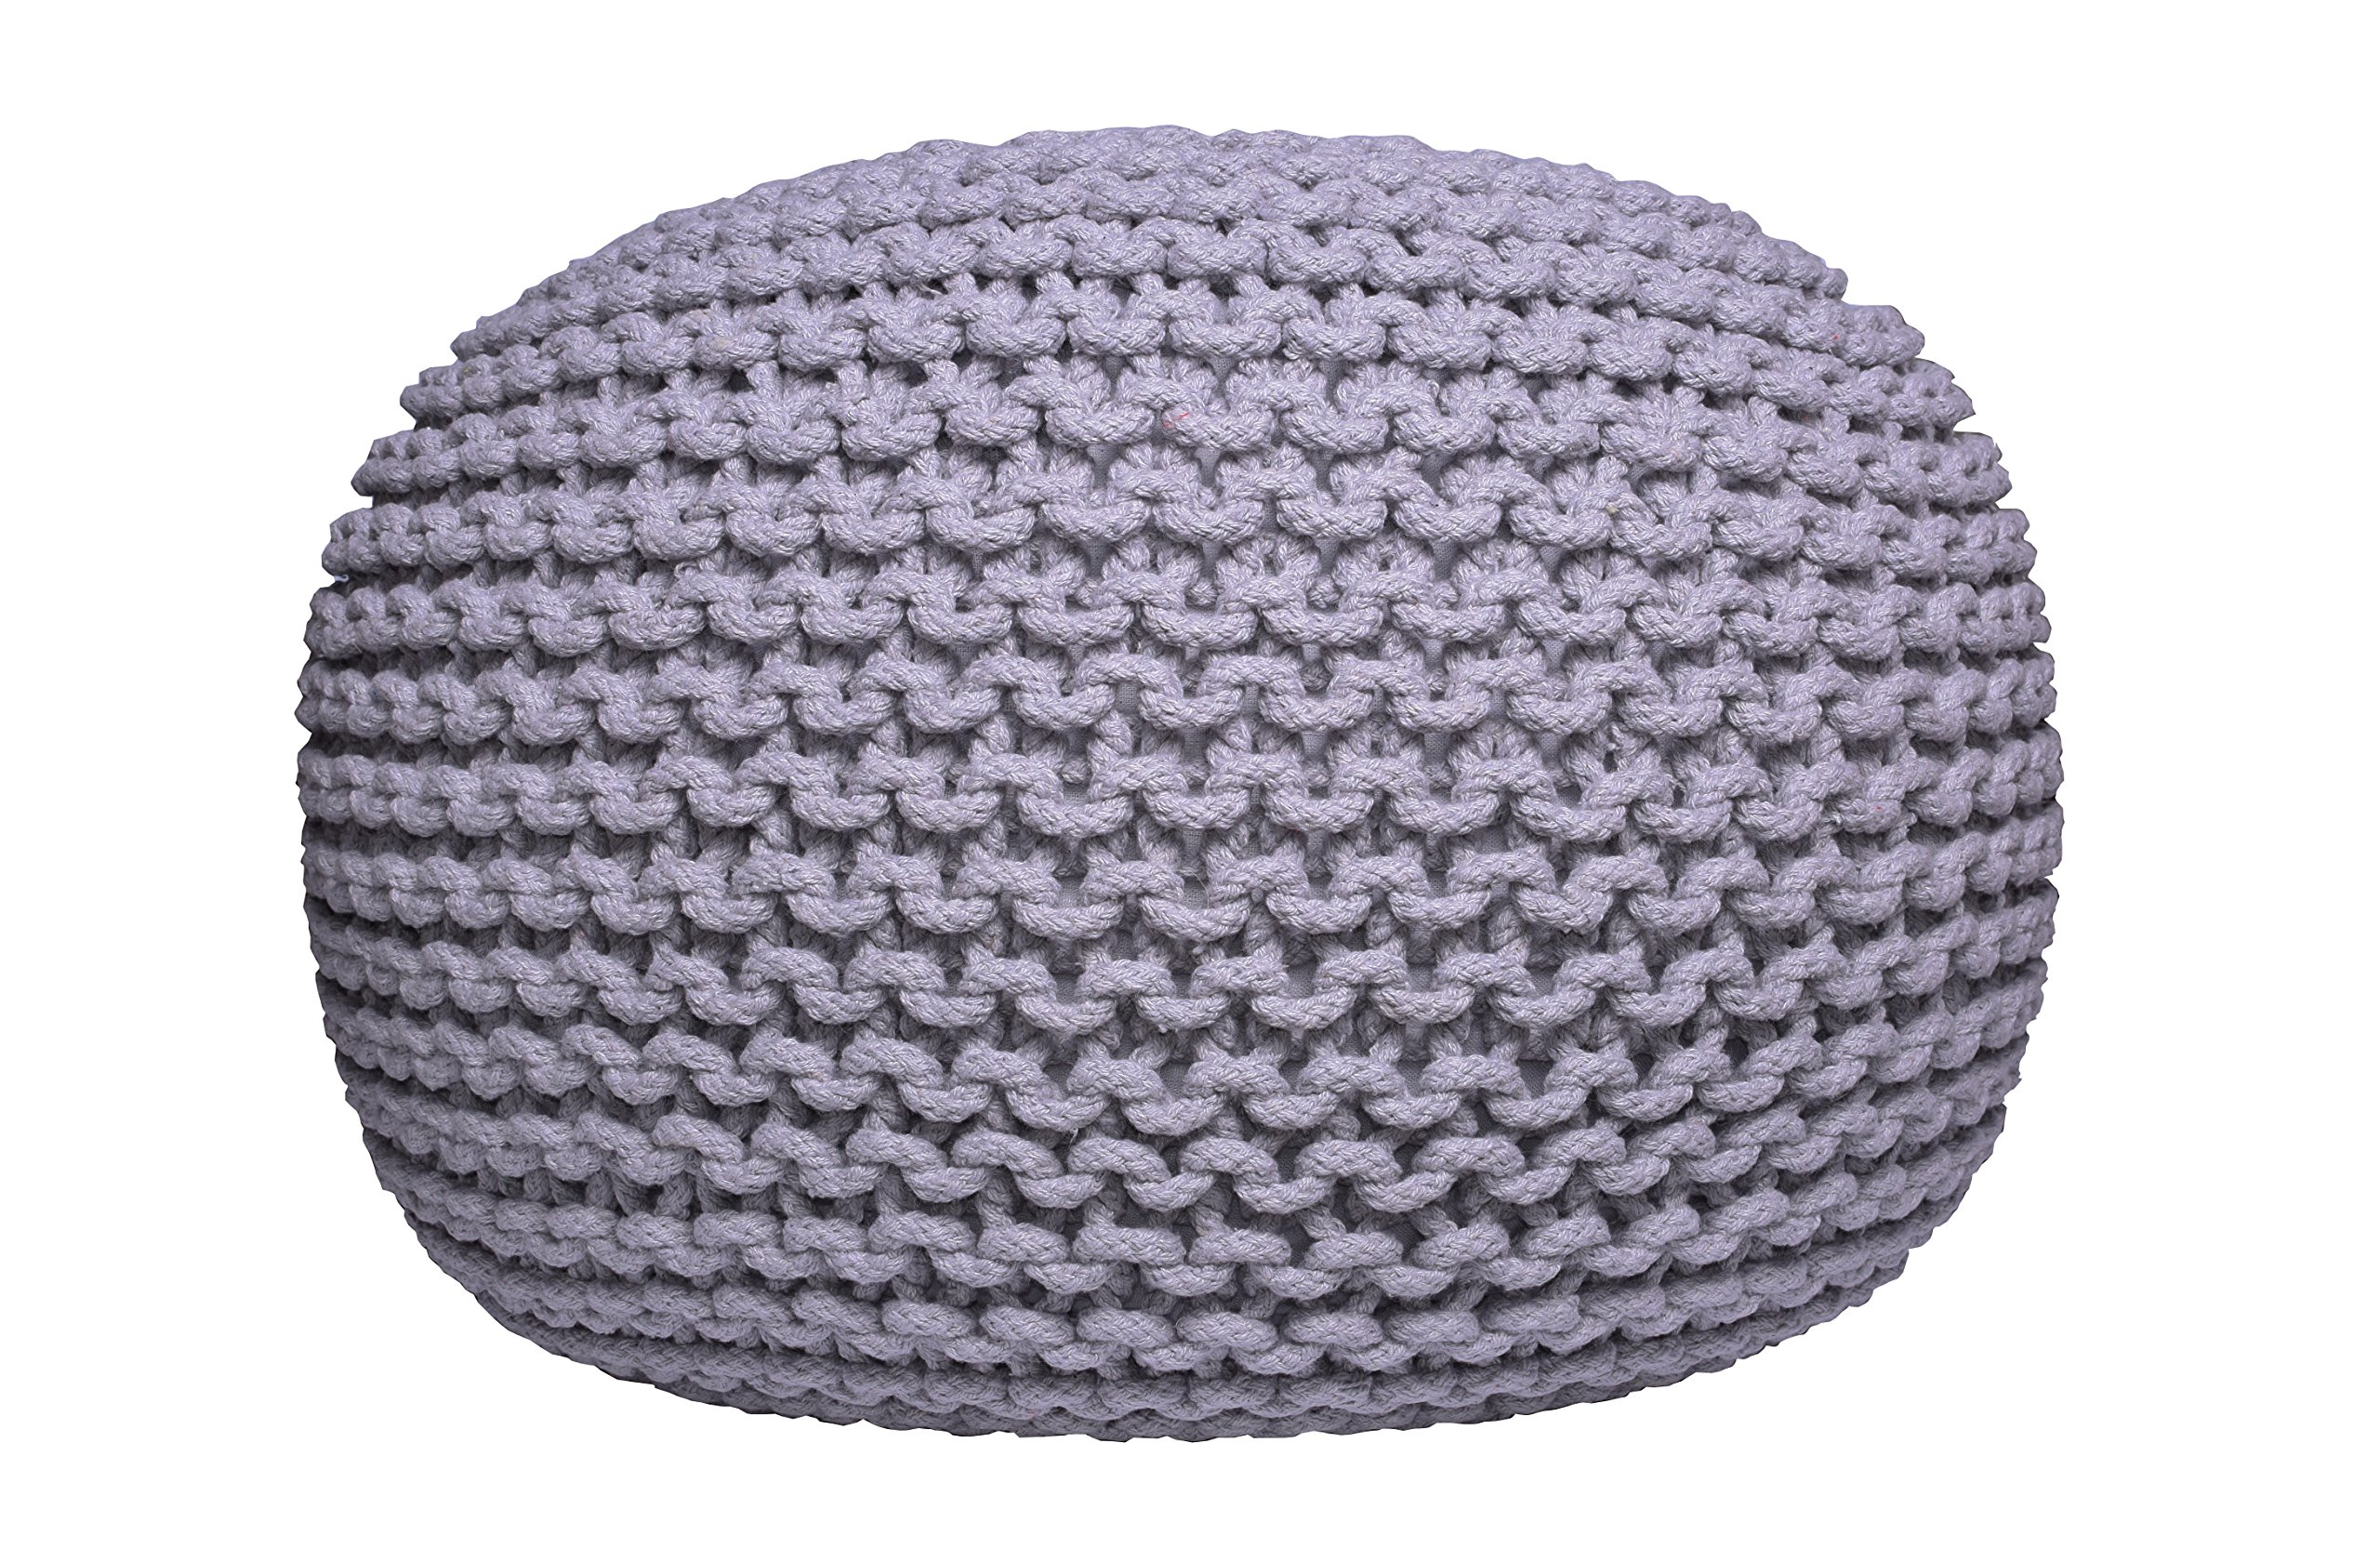 Pouf Ottoman Gray Round Hand Knitted Cable Style Cotton Dori ottoman Braided Rope Floor Ottomans Comfortable Seat Footstool Gray 16''x 20'' By MystiqueDecors